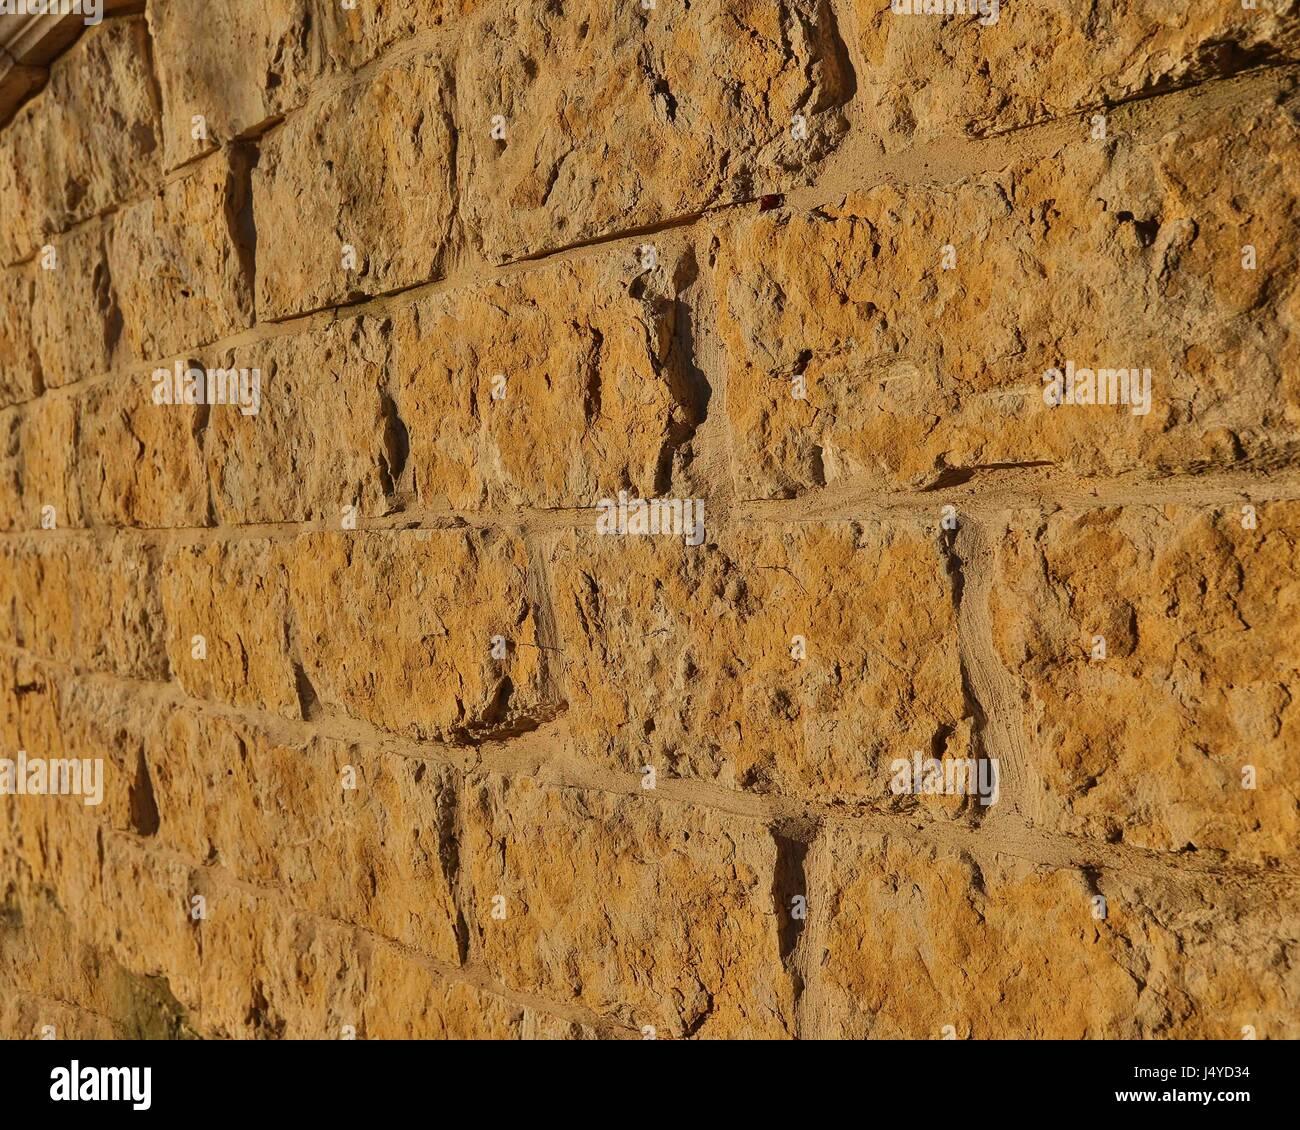 Stone Wall in warm colors for backgrounds - Stock Image